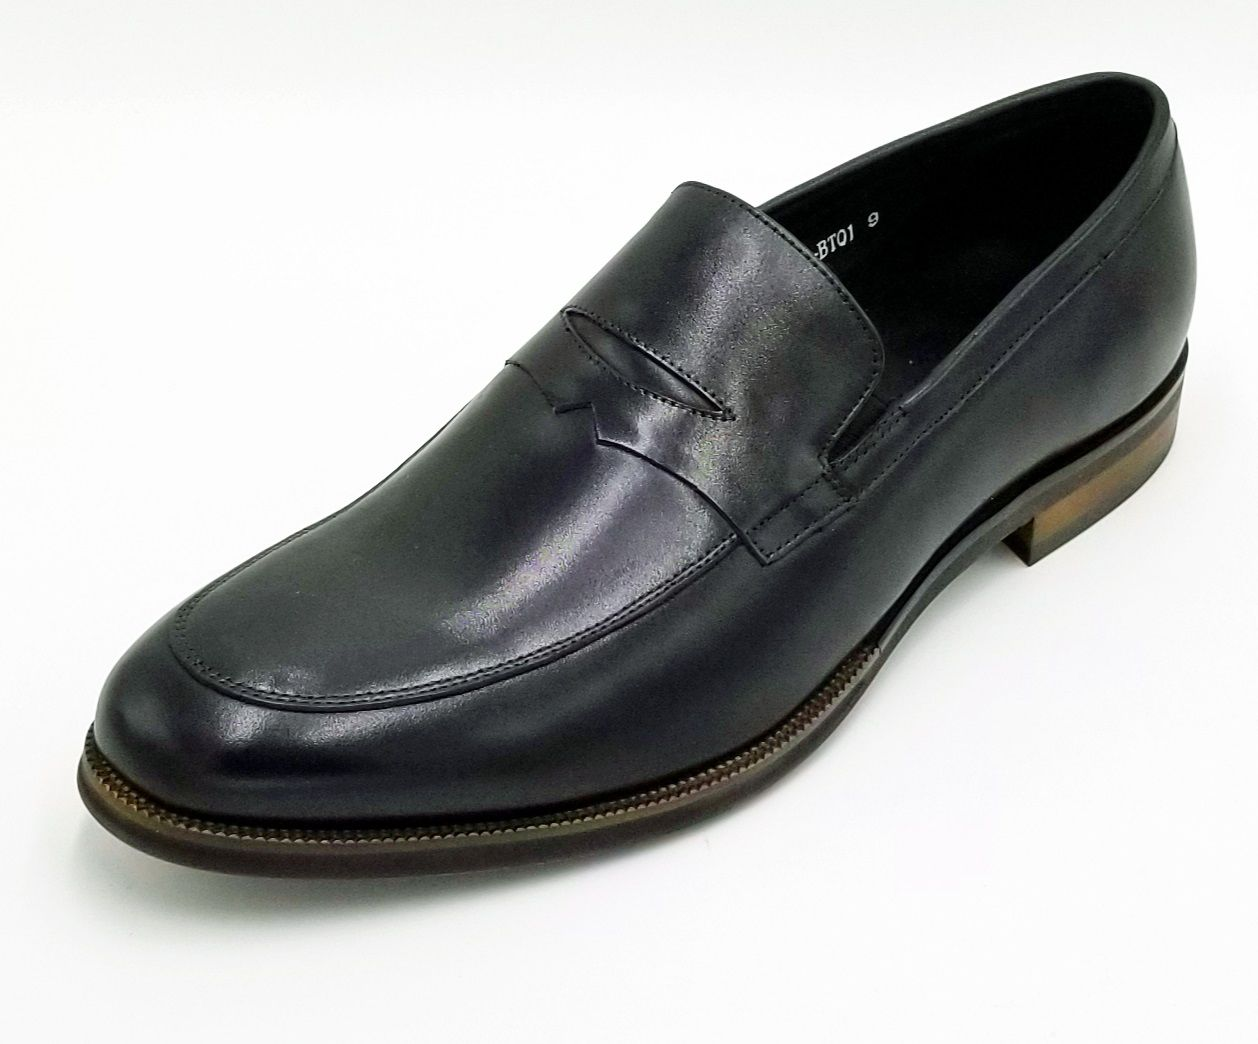 ZOTA Men's Premium Leather Dress Shoe - Executive Slip On